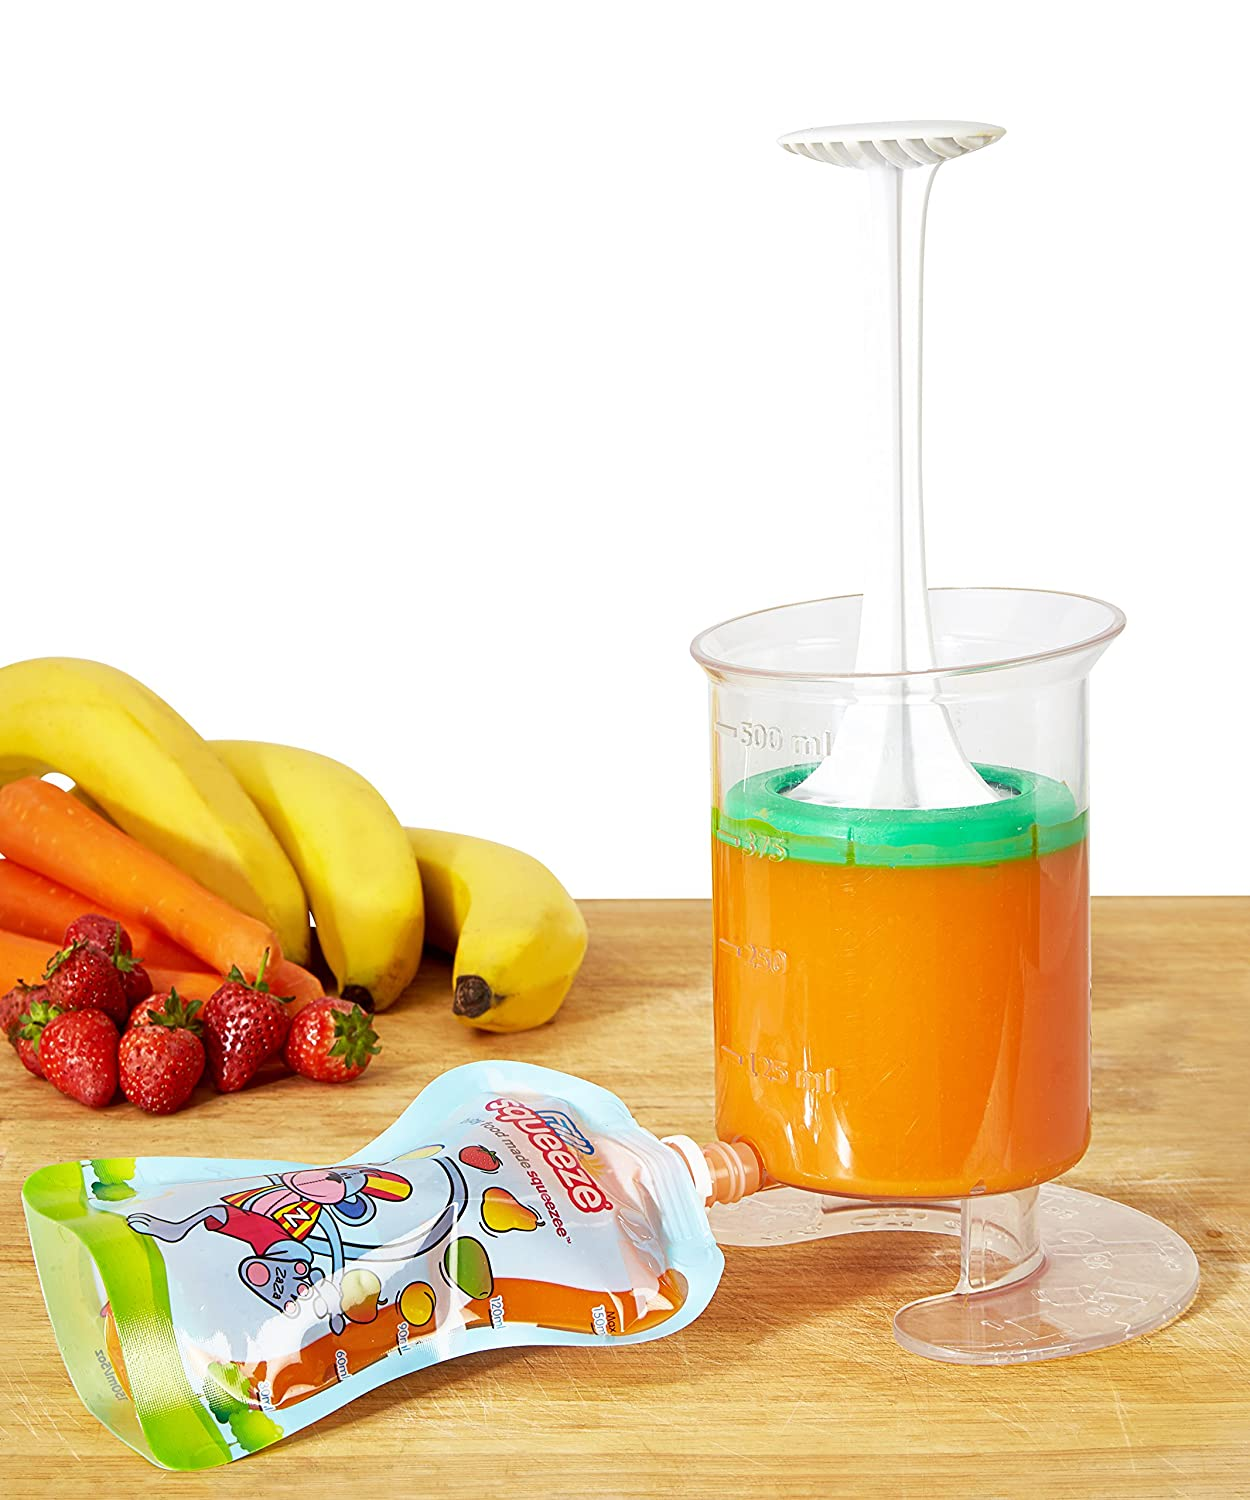 Baby Food Maker | Baby Food Mill and Masher with resqueeze Reusable Food Pouch for Freezer Storage - Blends Healthy Homemade Baby Food in Minutes | Mom Invented - Baby Led Feeding | Fill n Squeeze